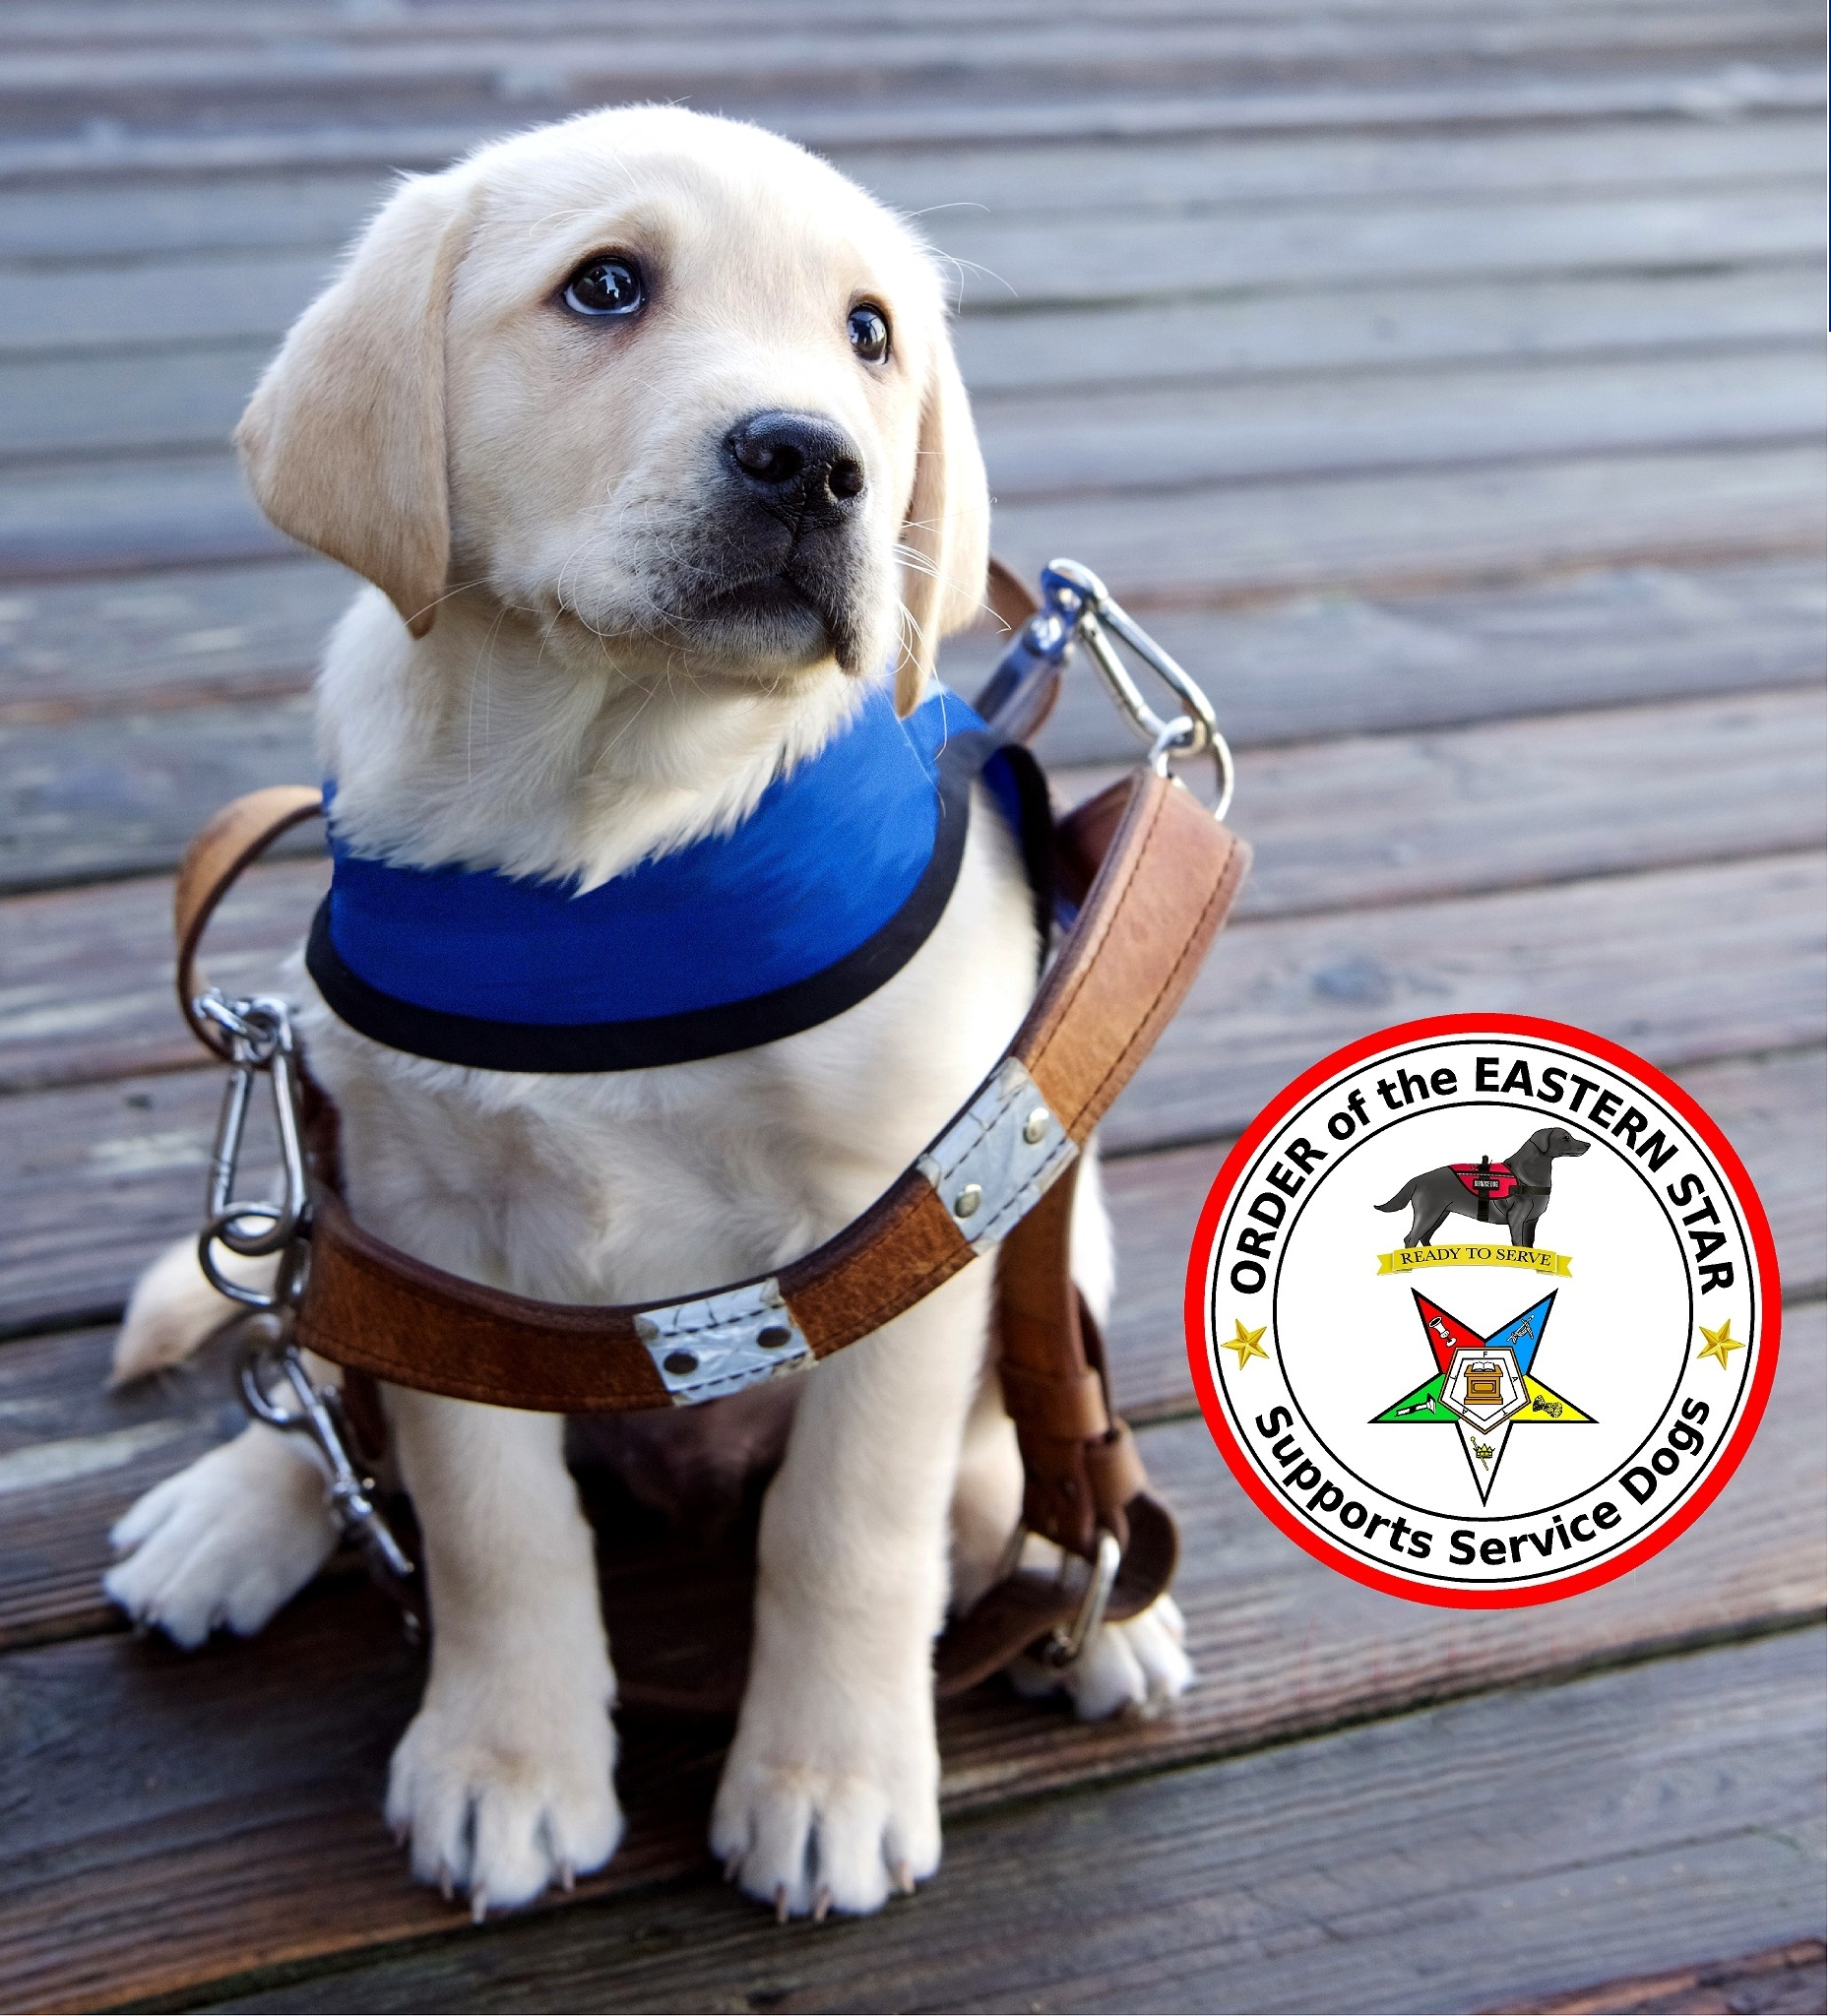 Order Of The Eastern Star Supports Service Dogs